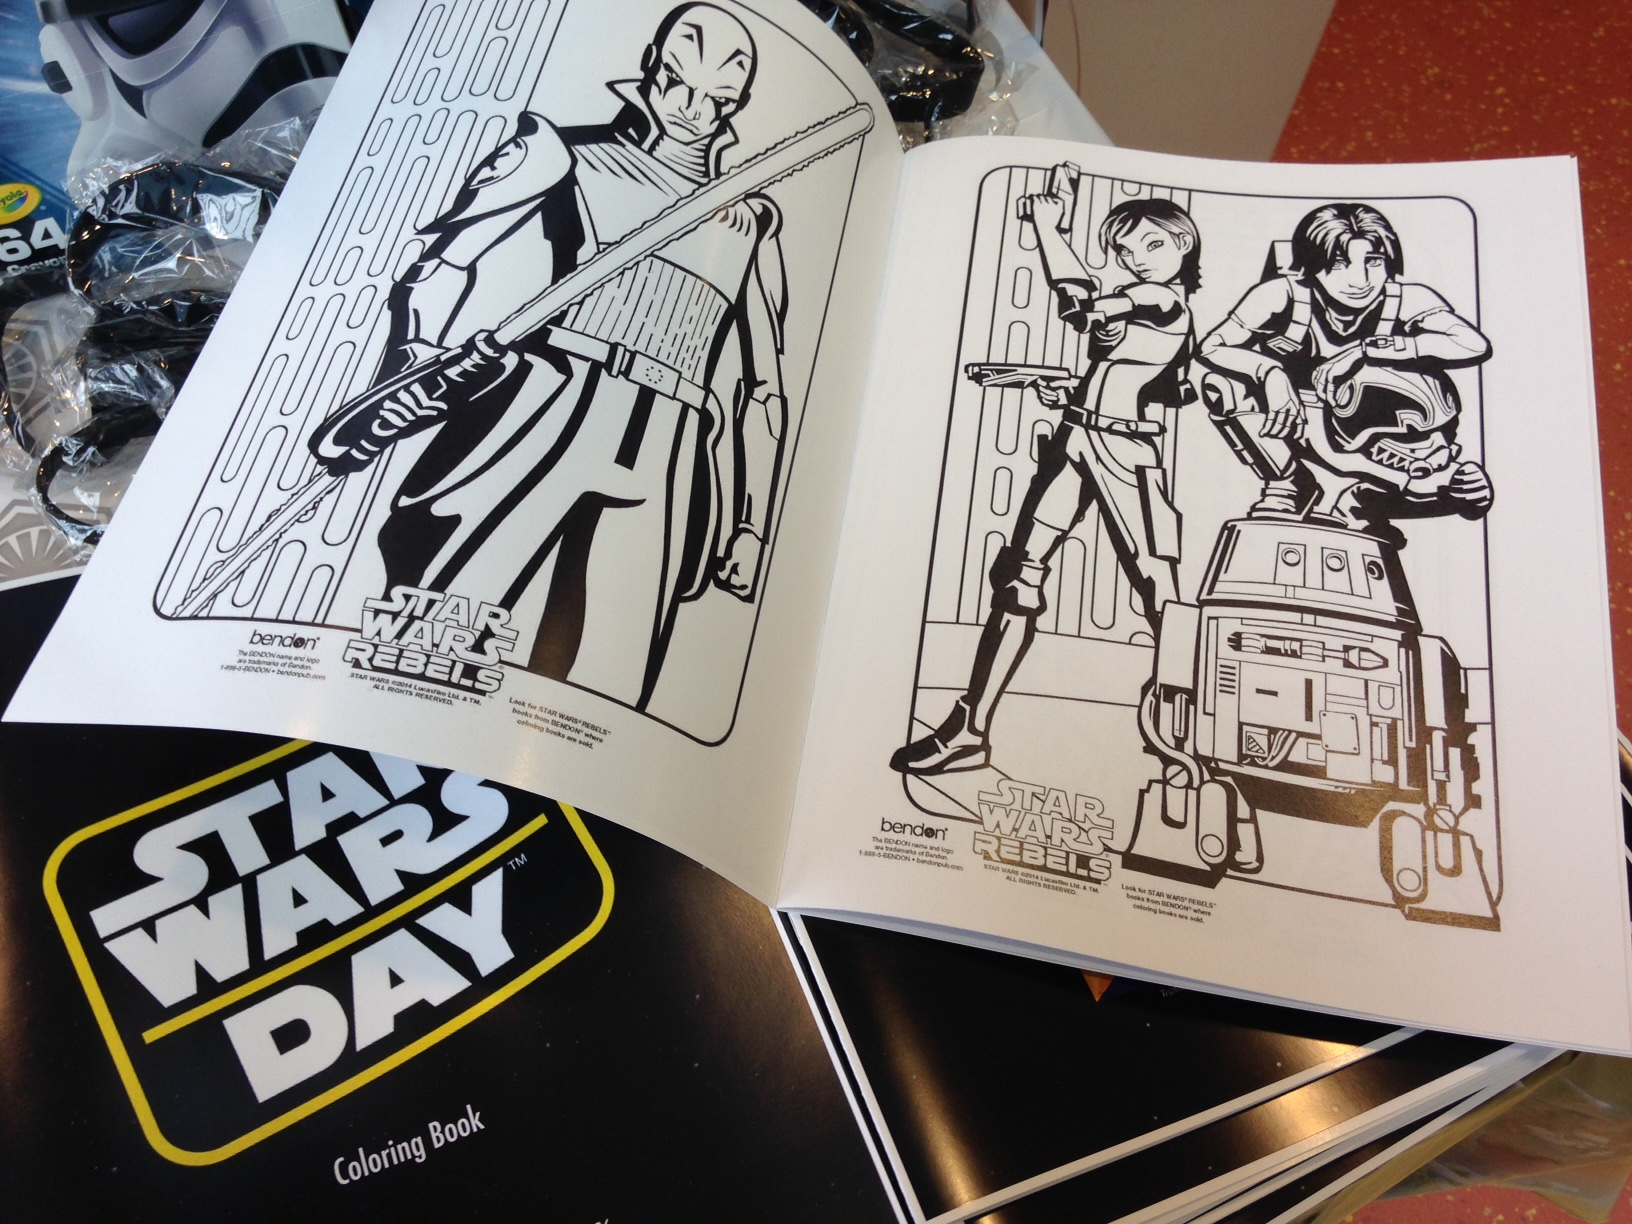 Childrens hospital coloring book - Morristown Nj On Wednesday May 4 The Goryeb Children S Hospital Celebrated May The 4th Be With You Day May 4 2016 By Inviting Star Wars Characters